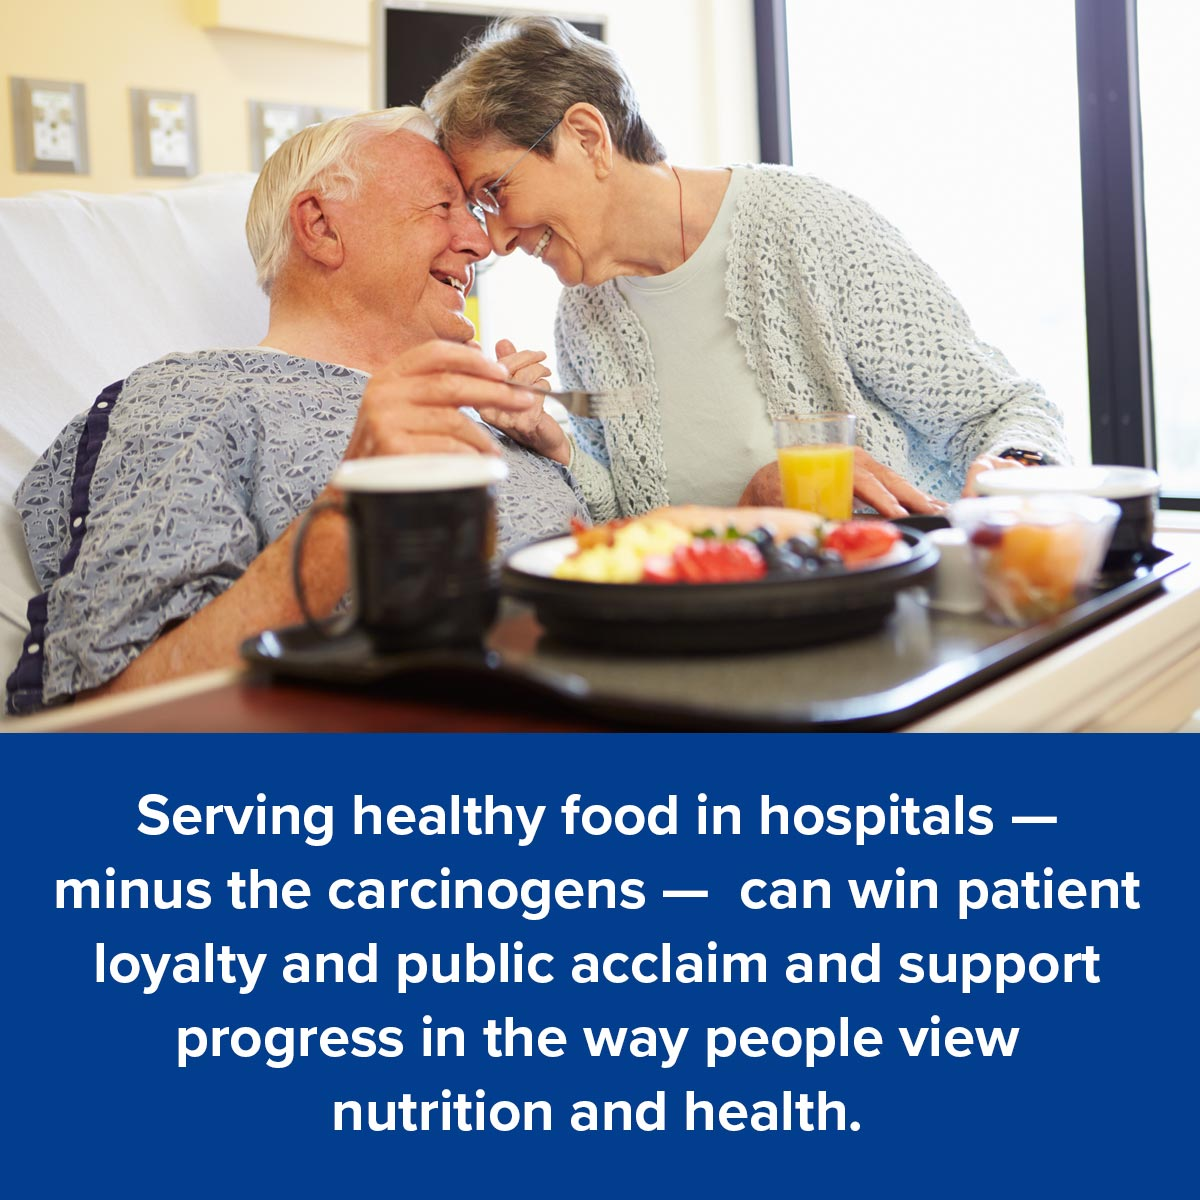 Serving healthy food in hospitals - minus the carcinogens - can win patient loyalty and public acclaim and support progress in the way people view nutrition and health.